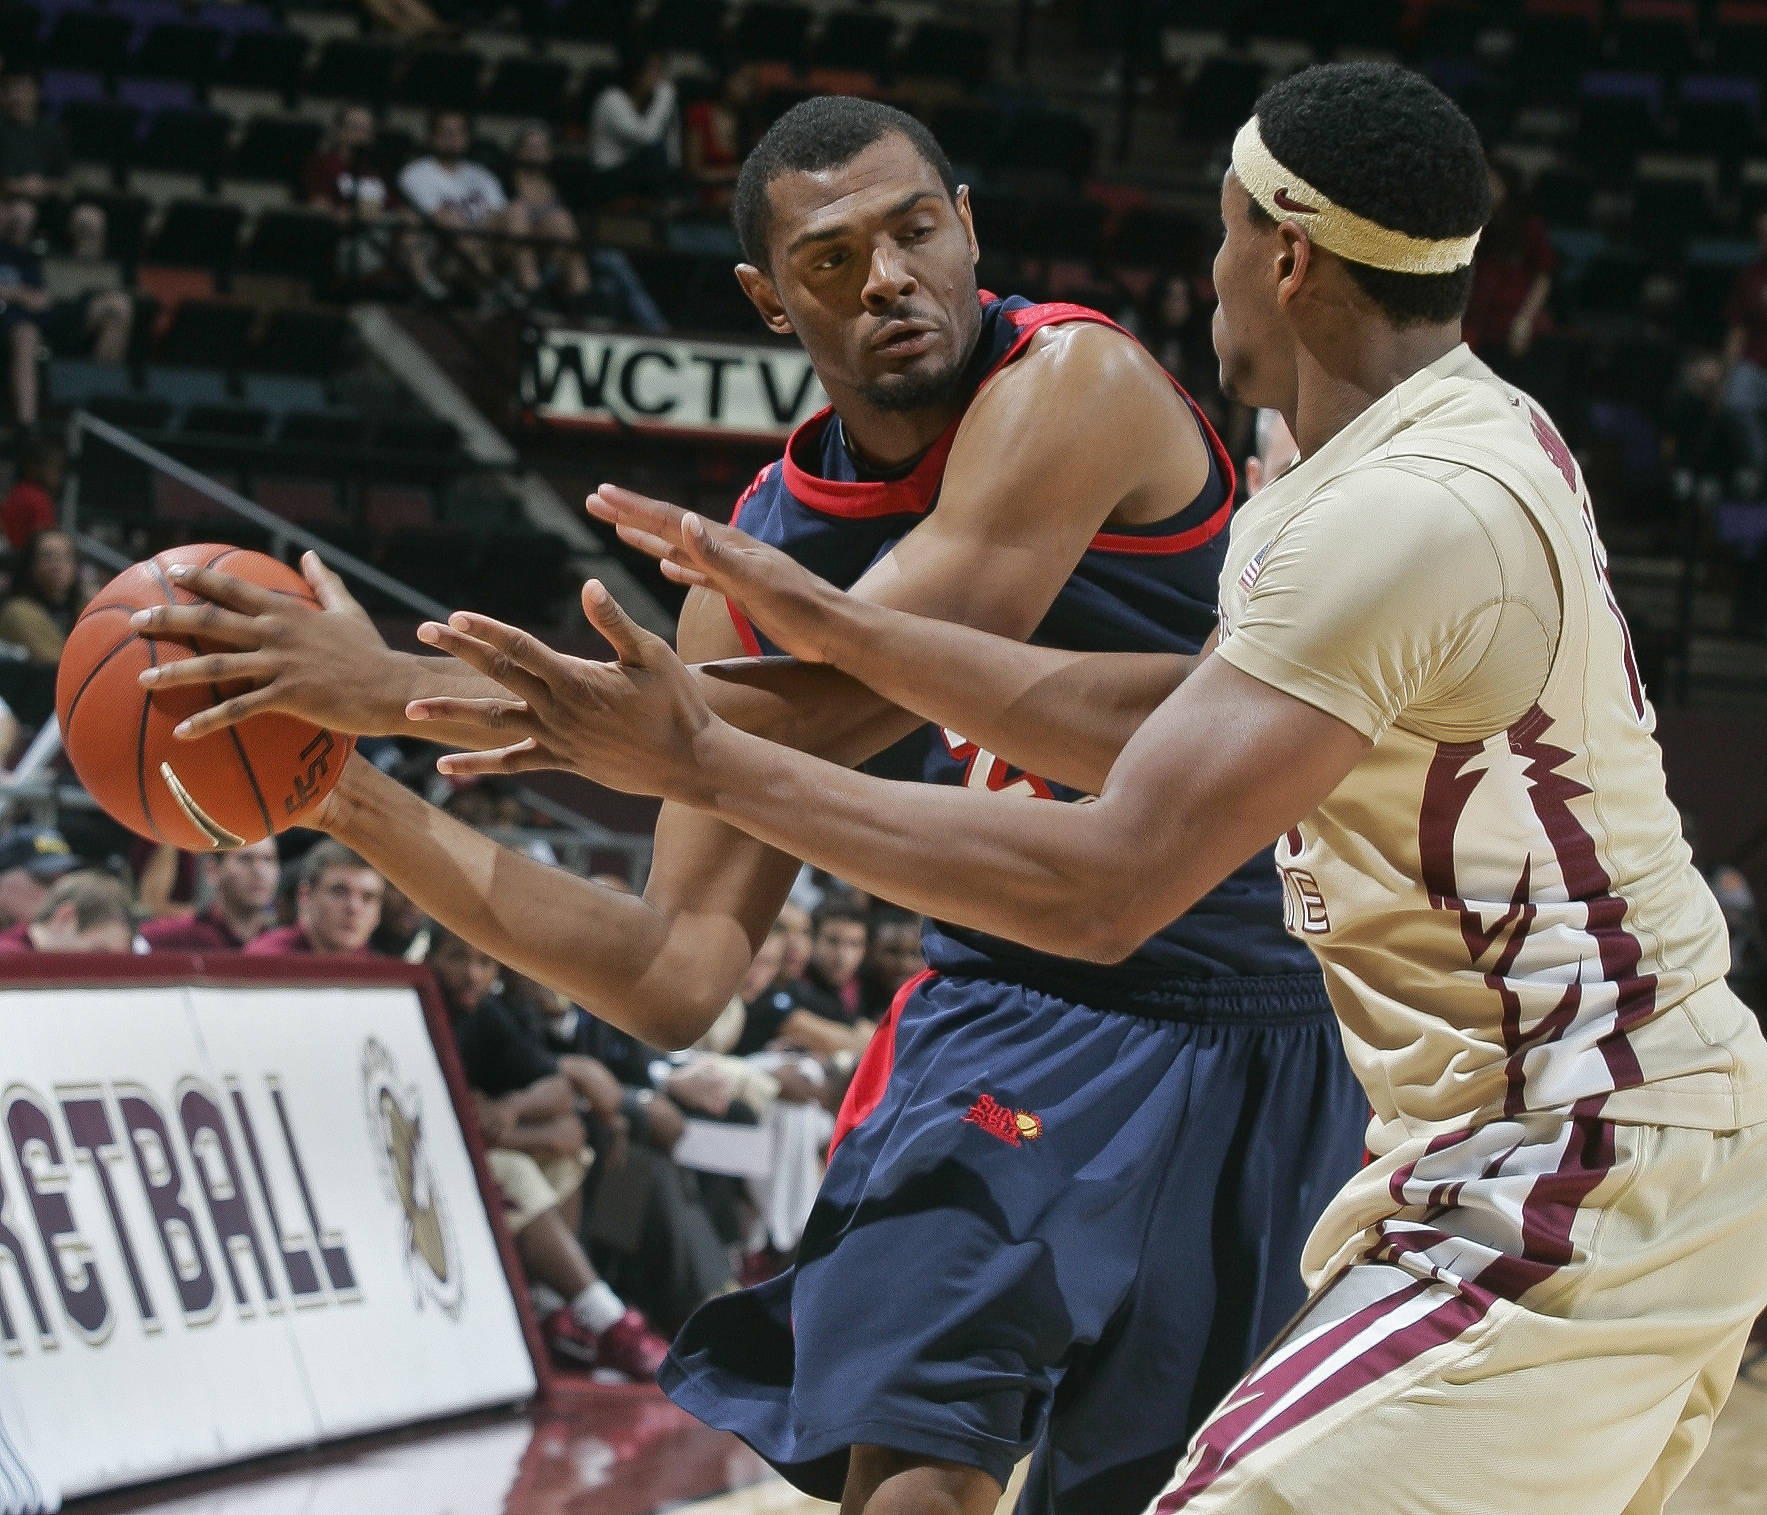 Florida State forward Terrance Shannon (15) pressures South Alabama forward DeAndre Hersey. (AP Photo/Phil Sears)